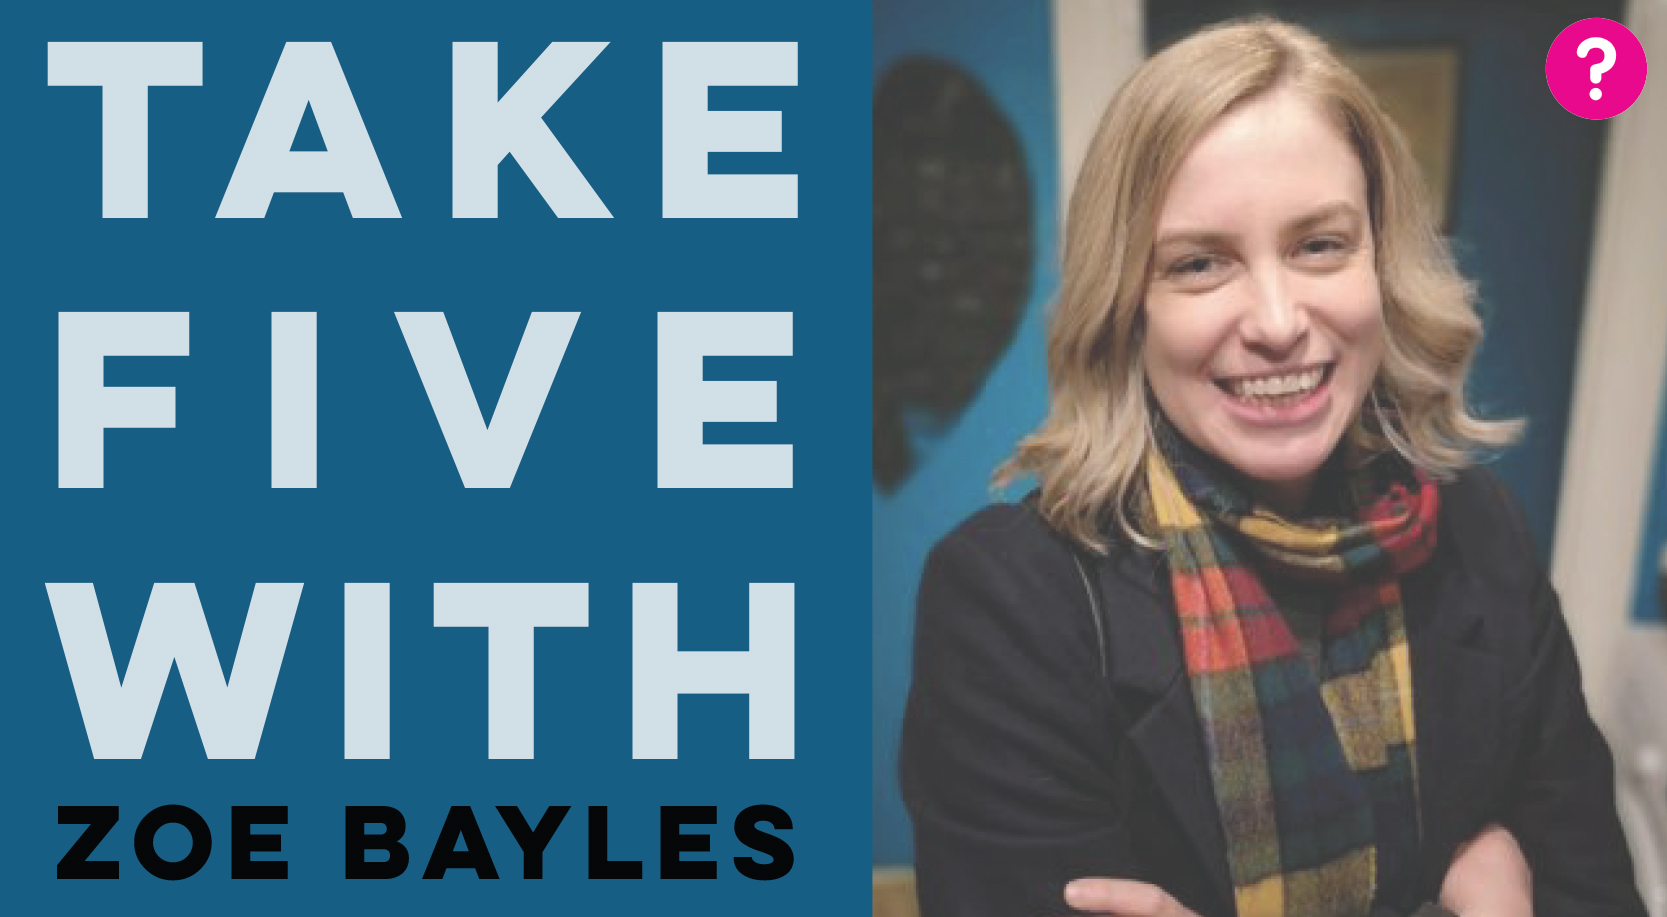 Take Five With Zoe Bayles - Zoe stands with her arms crossed and is smiling into the camera